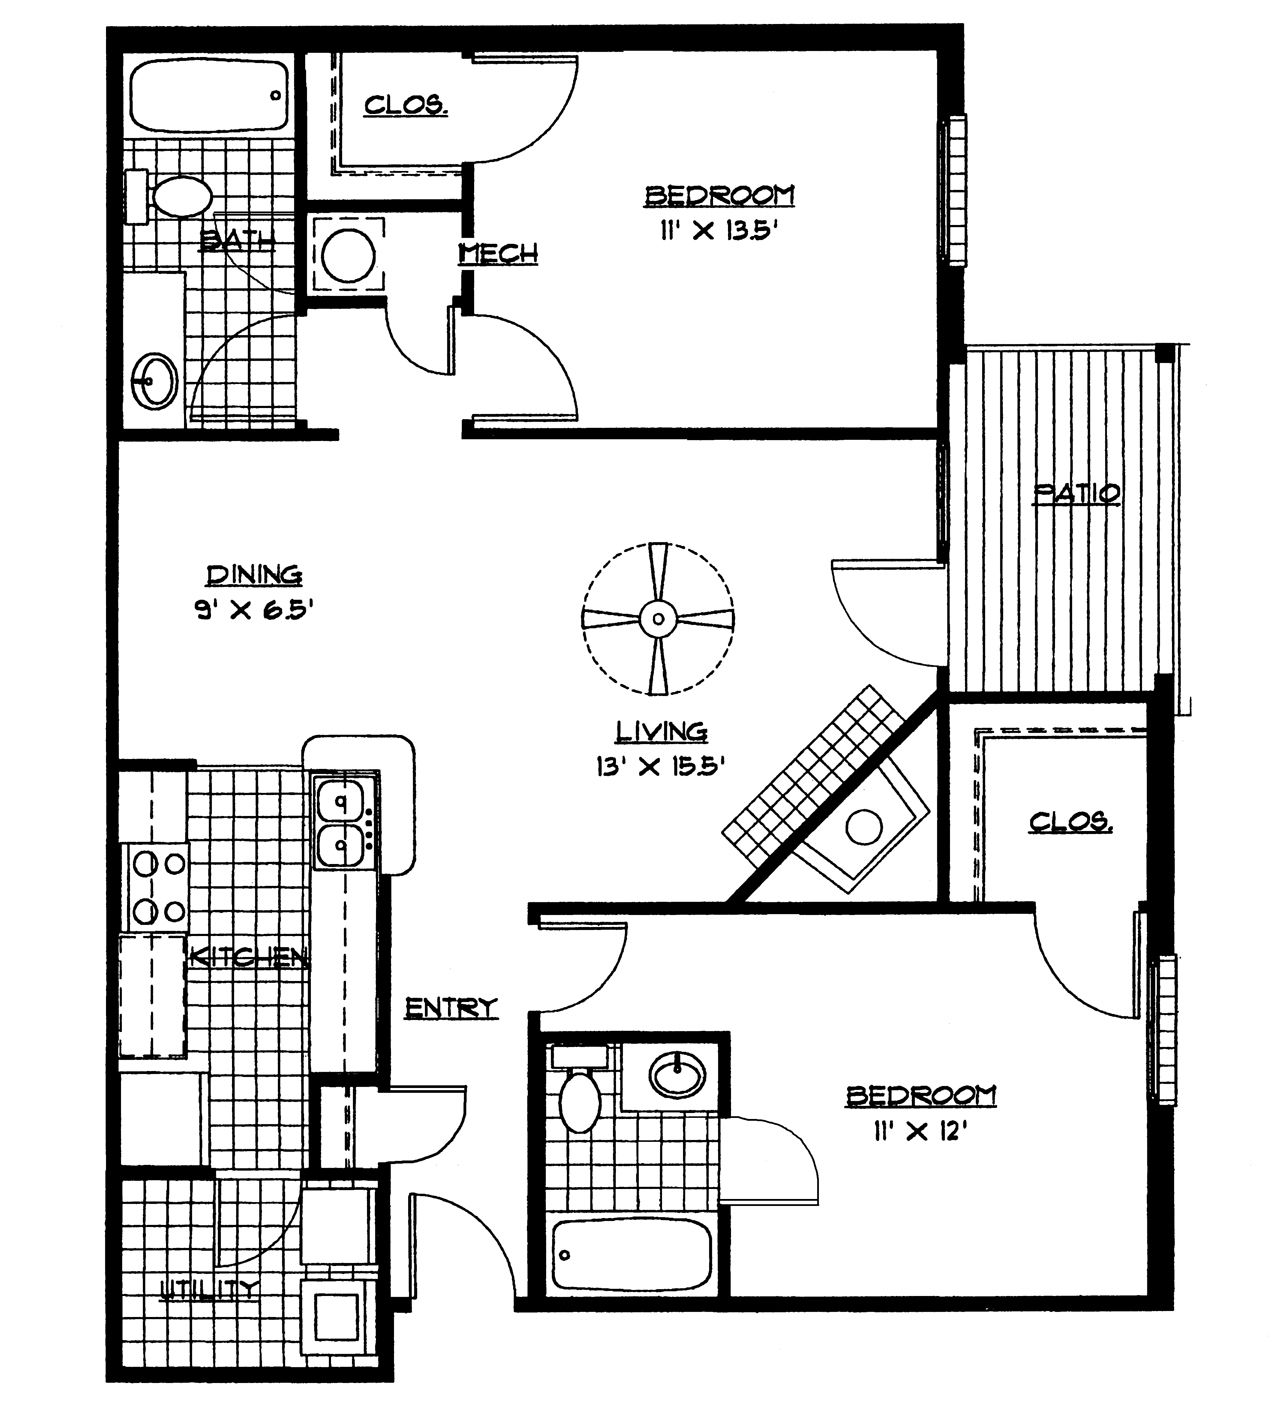 Small house floor plans 2 bedrooms bedroom floor plan Sample 2 bedroom house plans